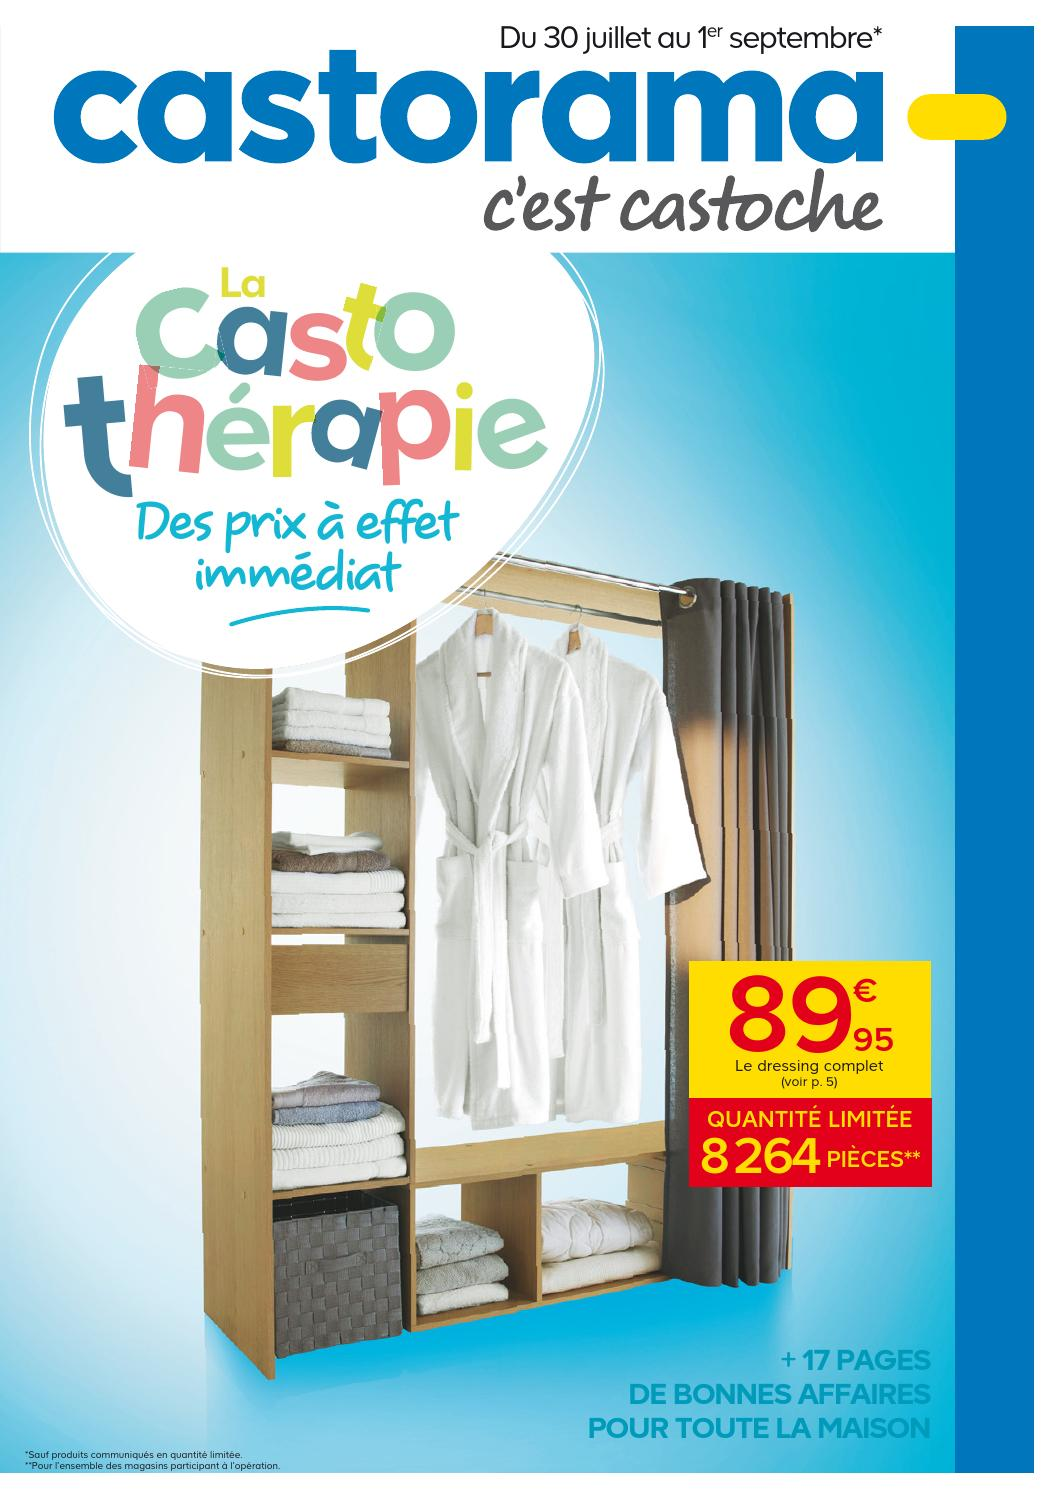 Castorama Catalogue 30juillet 1septembre2014 By Promocatalogues